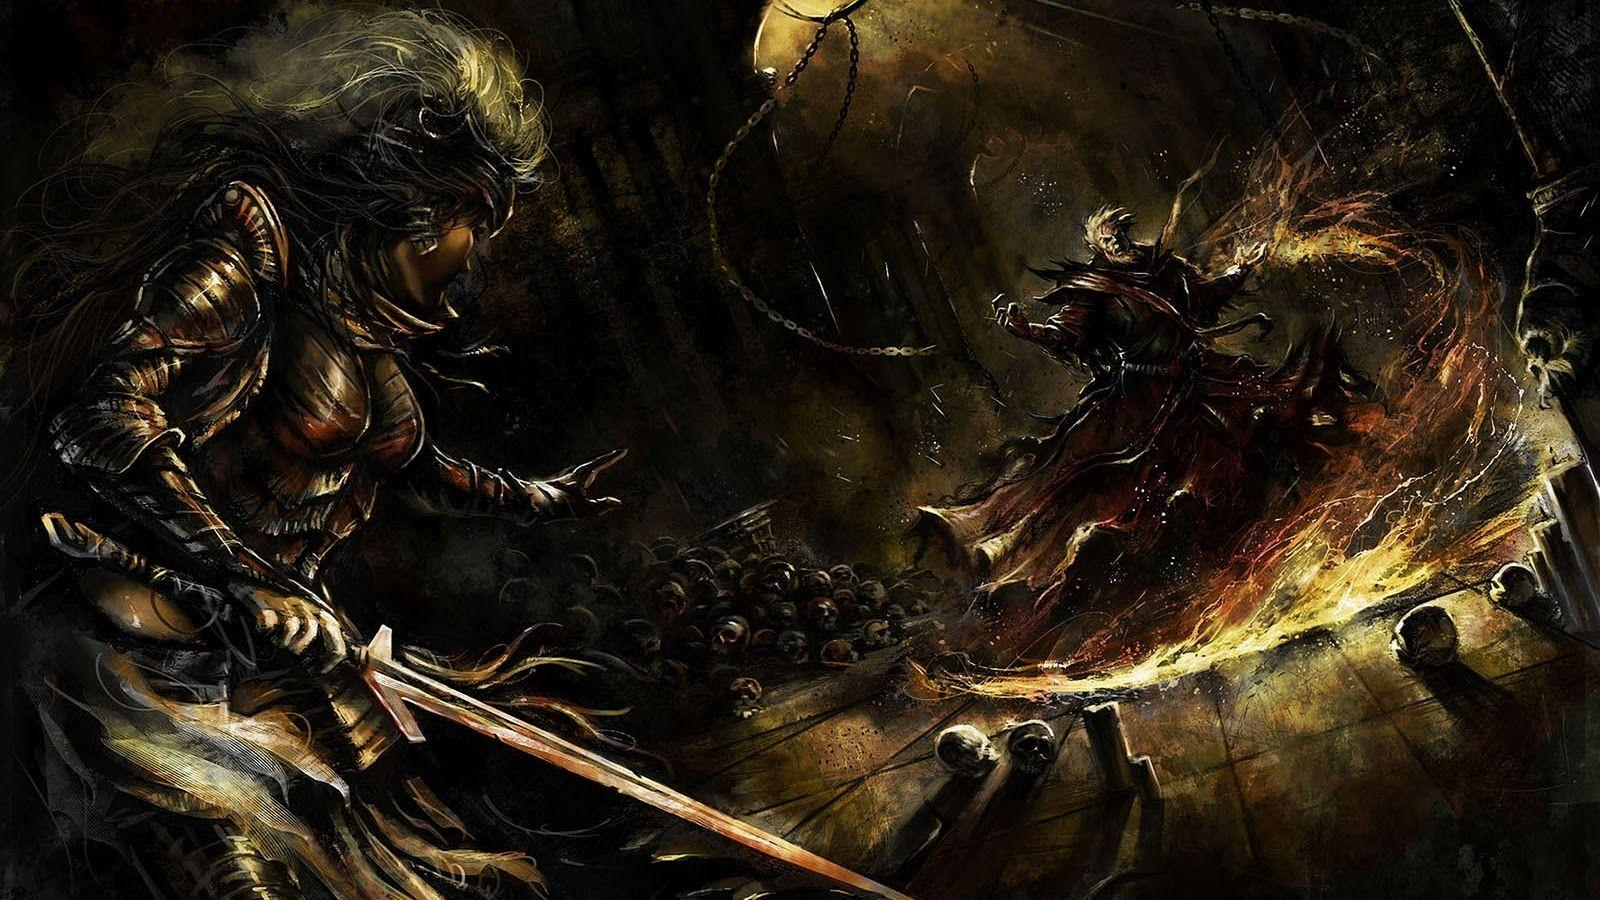 Wallpapers Land: Sorcerer vs Knight